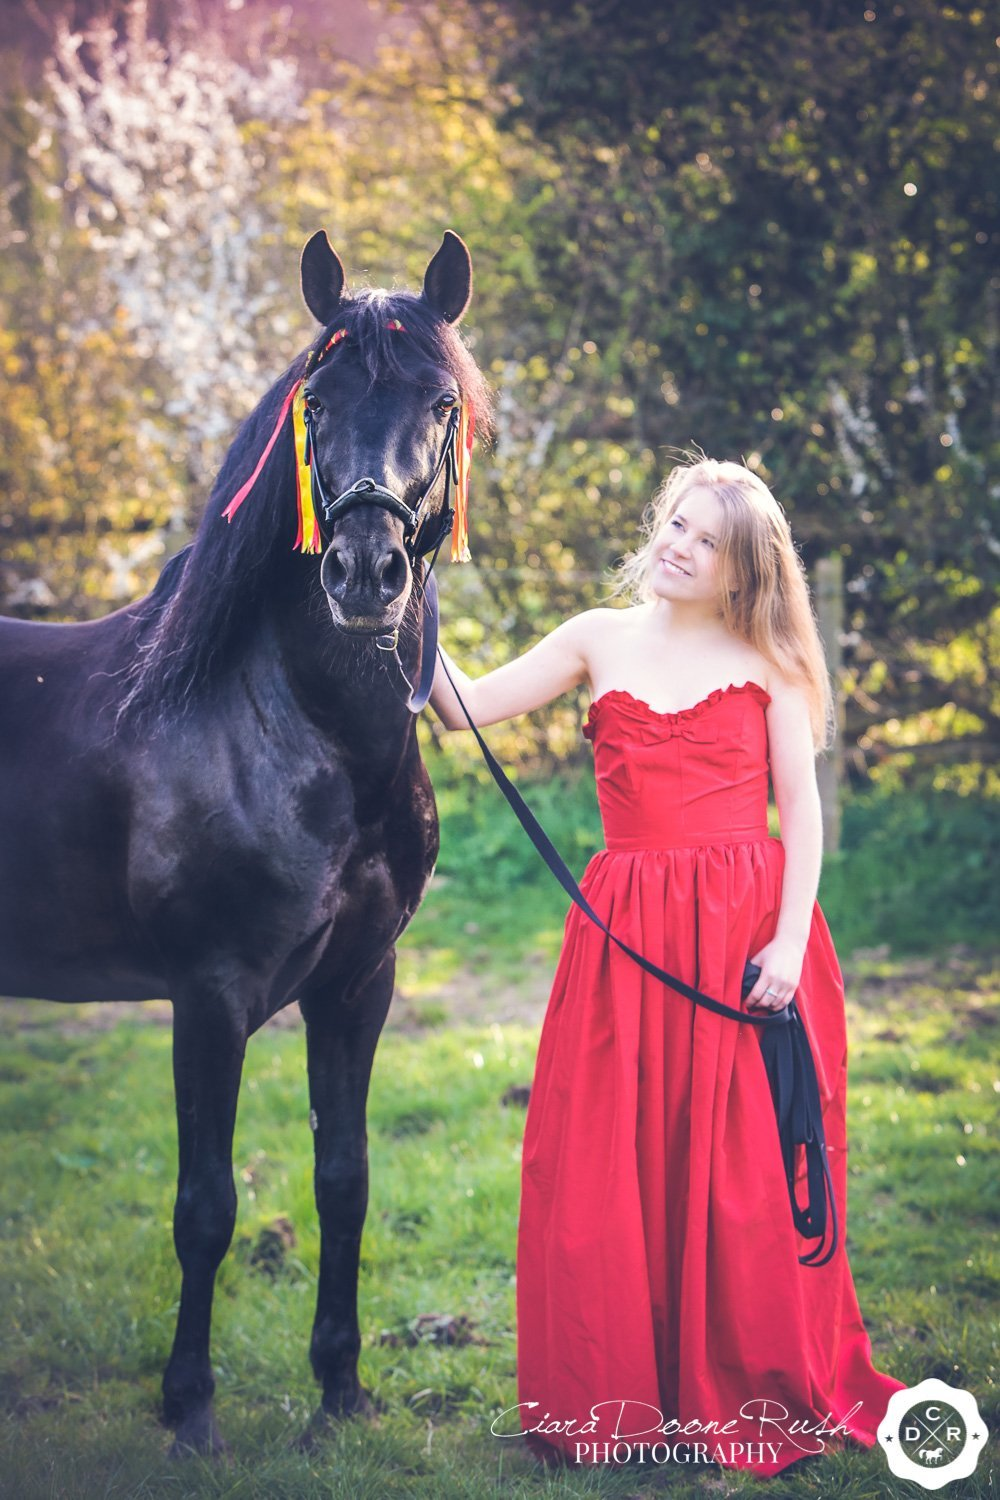 horse and rider creative portrait photography